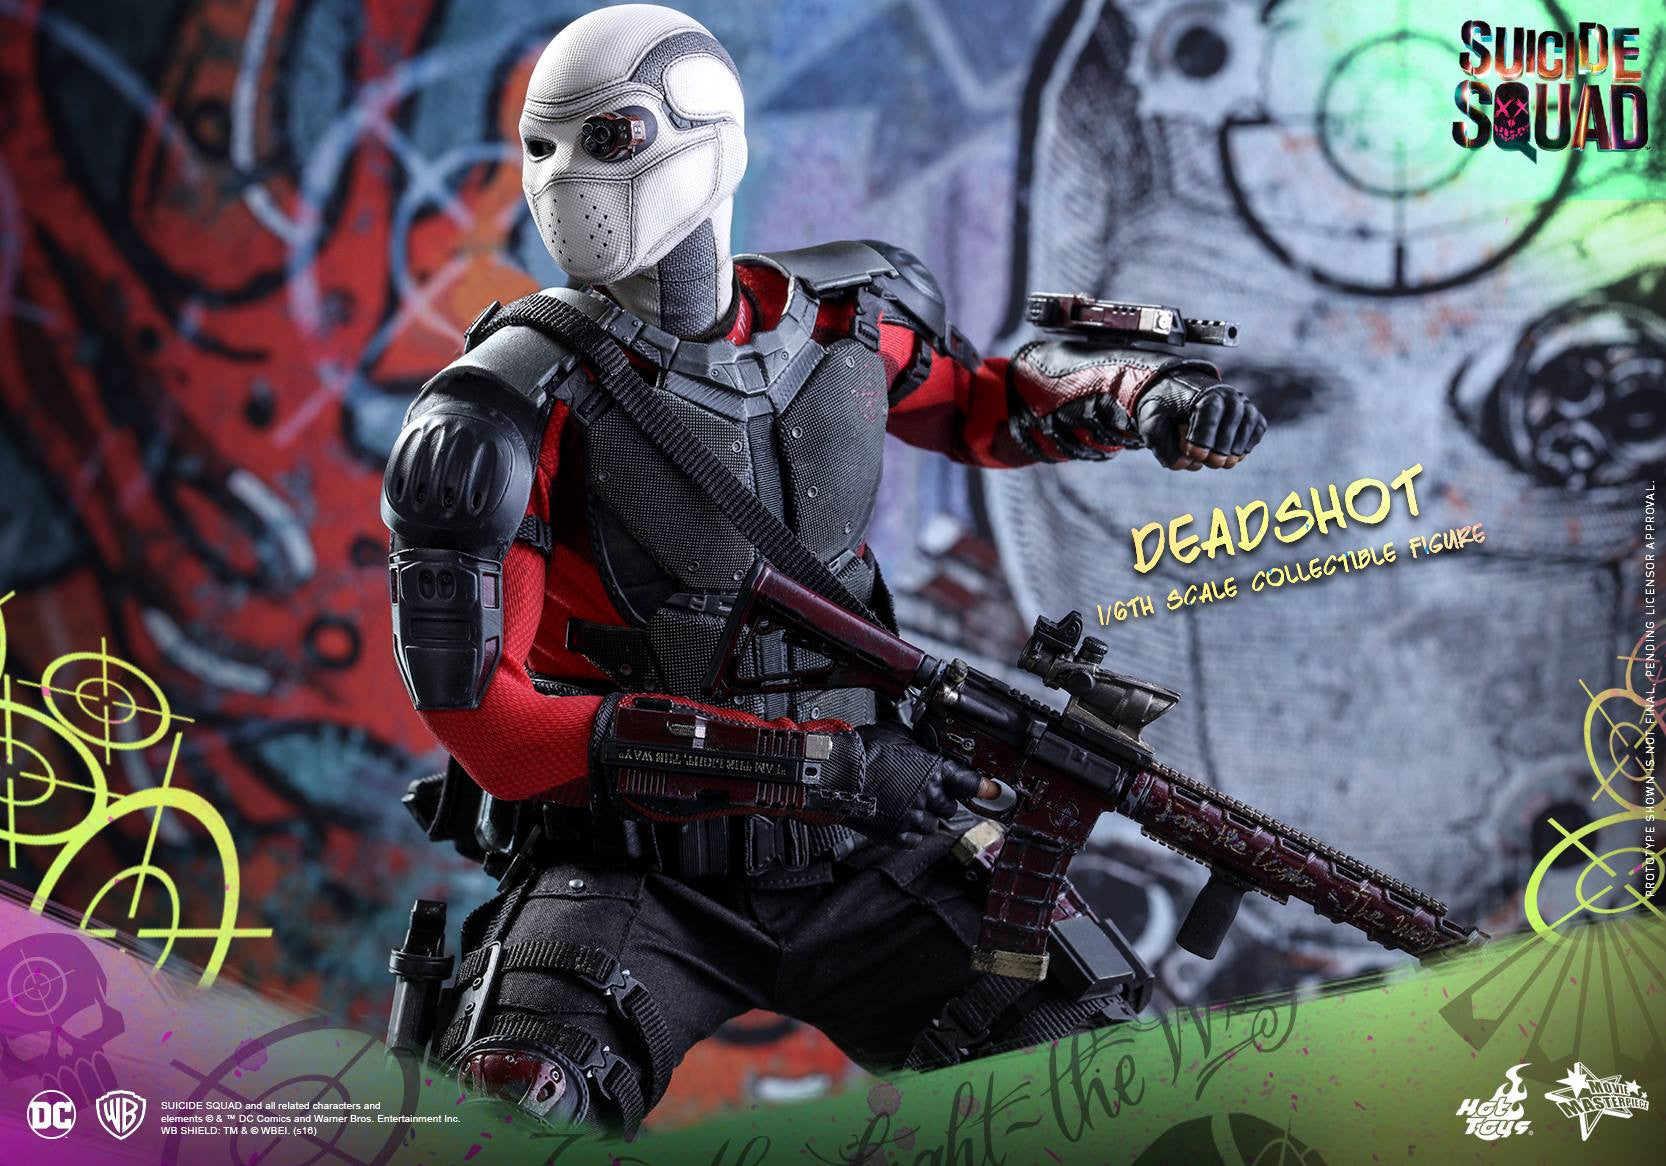 Hot Toys - MMS381 - Suicide Squad - Deadshot (Normal Edition) - Marvelous Toys - 19